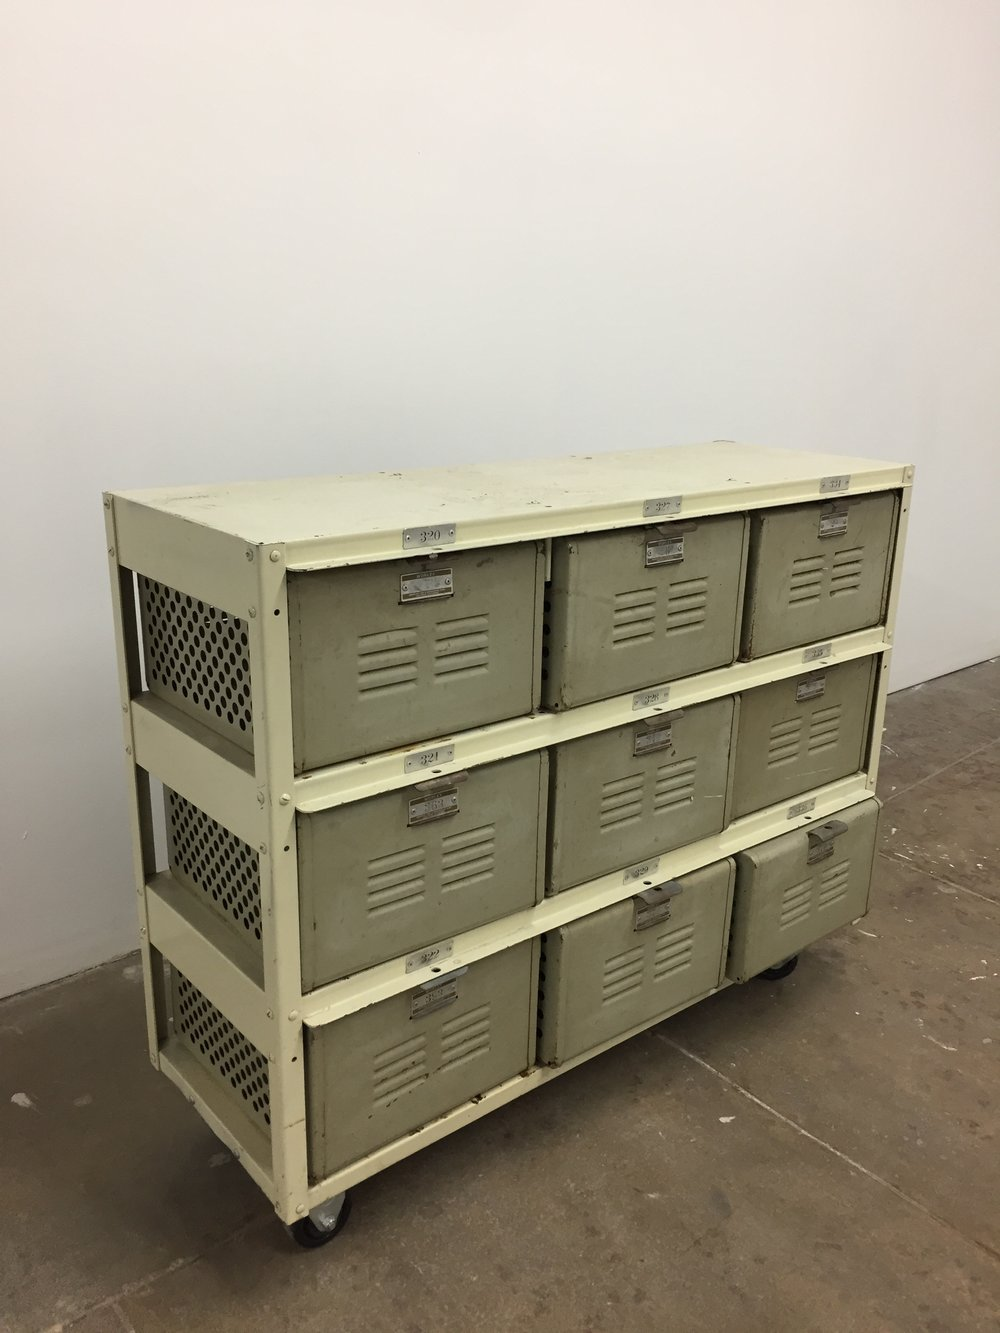 Metal Lockers QTY:1 Price: $45